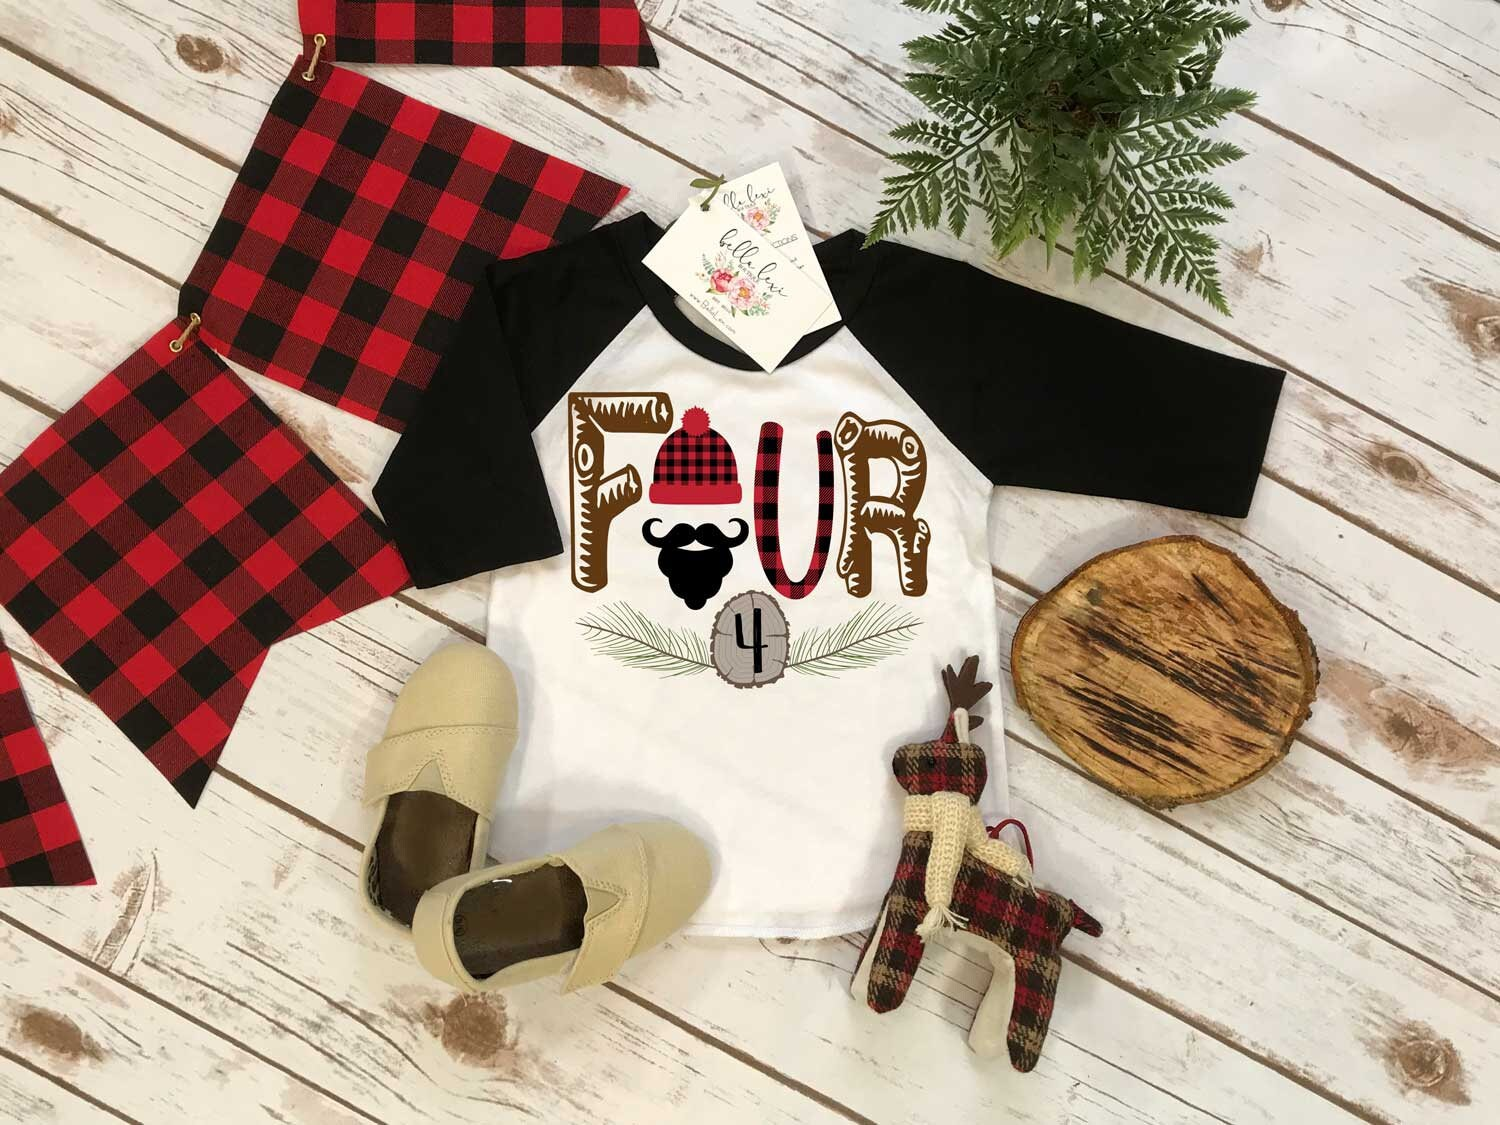 Fourth Birthday Shirt, Lumberjack Birthday, 4th Birthday shirt, Buffalo Plaid Party, Lumberjack Party